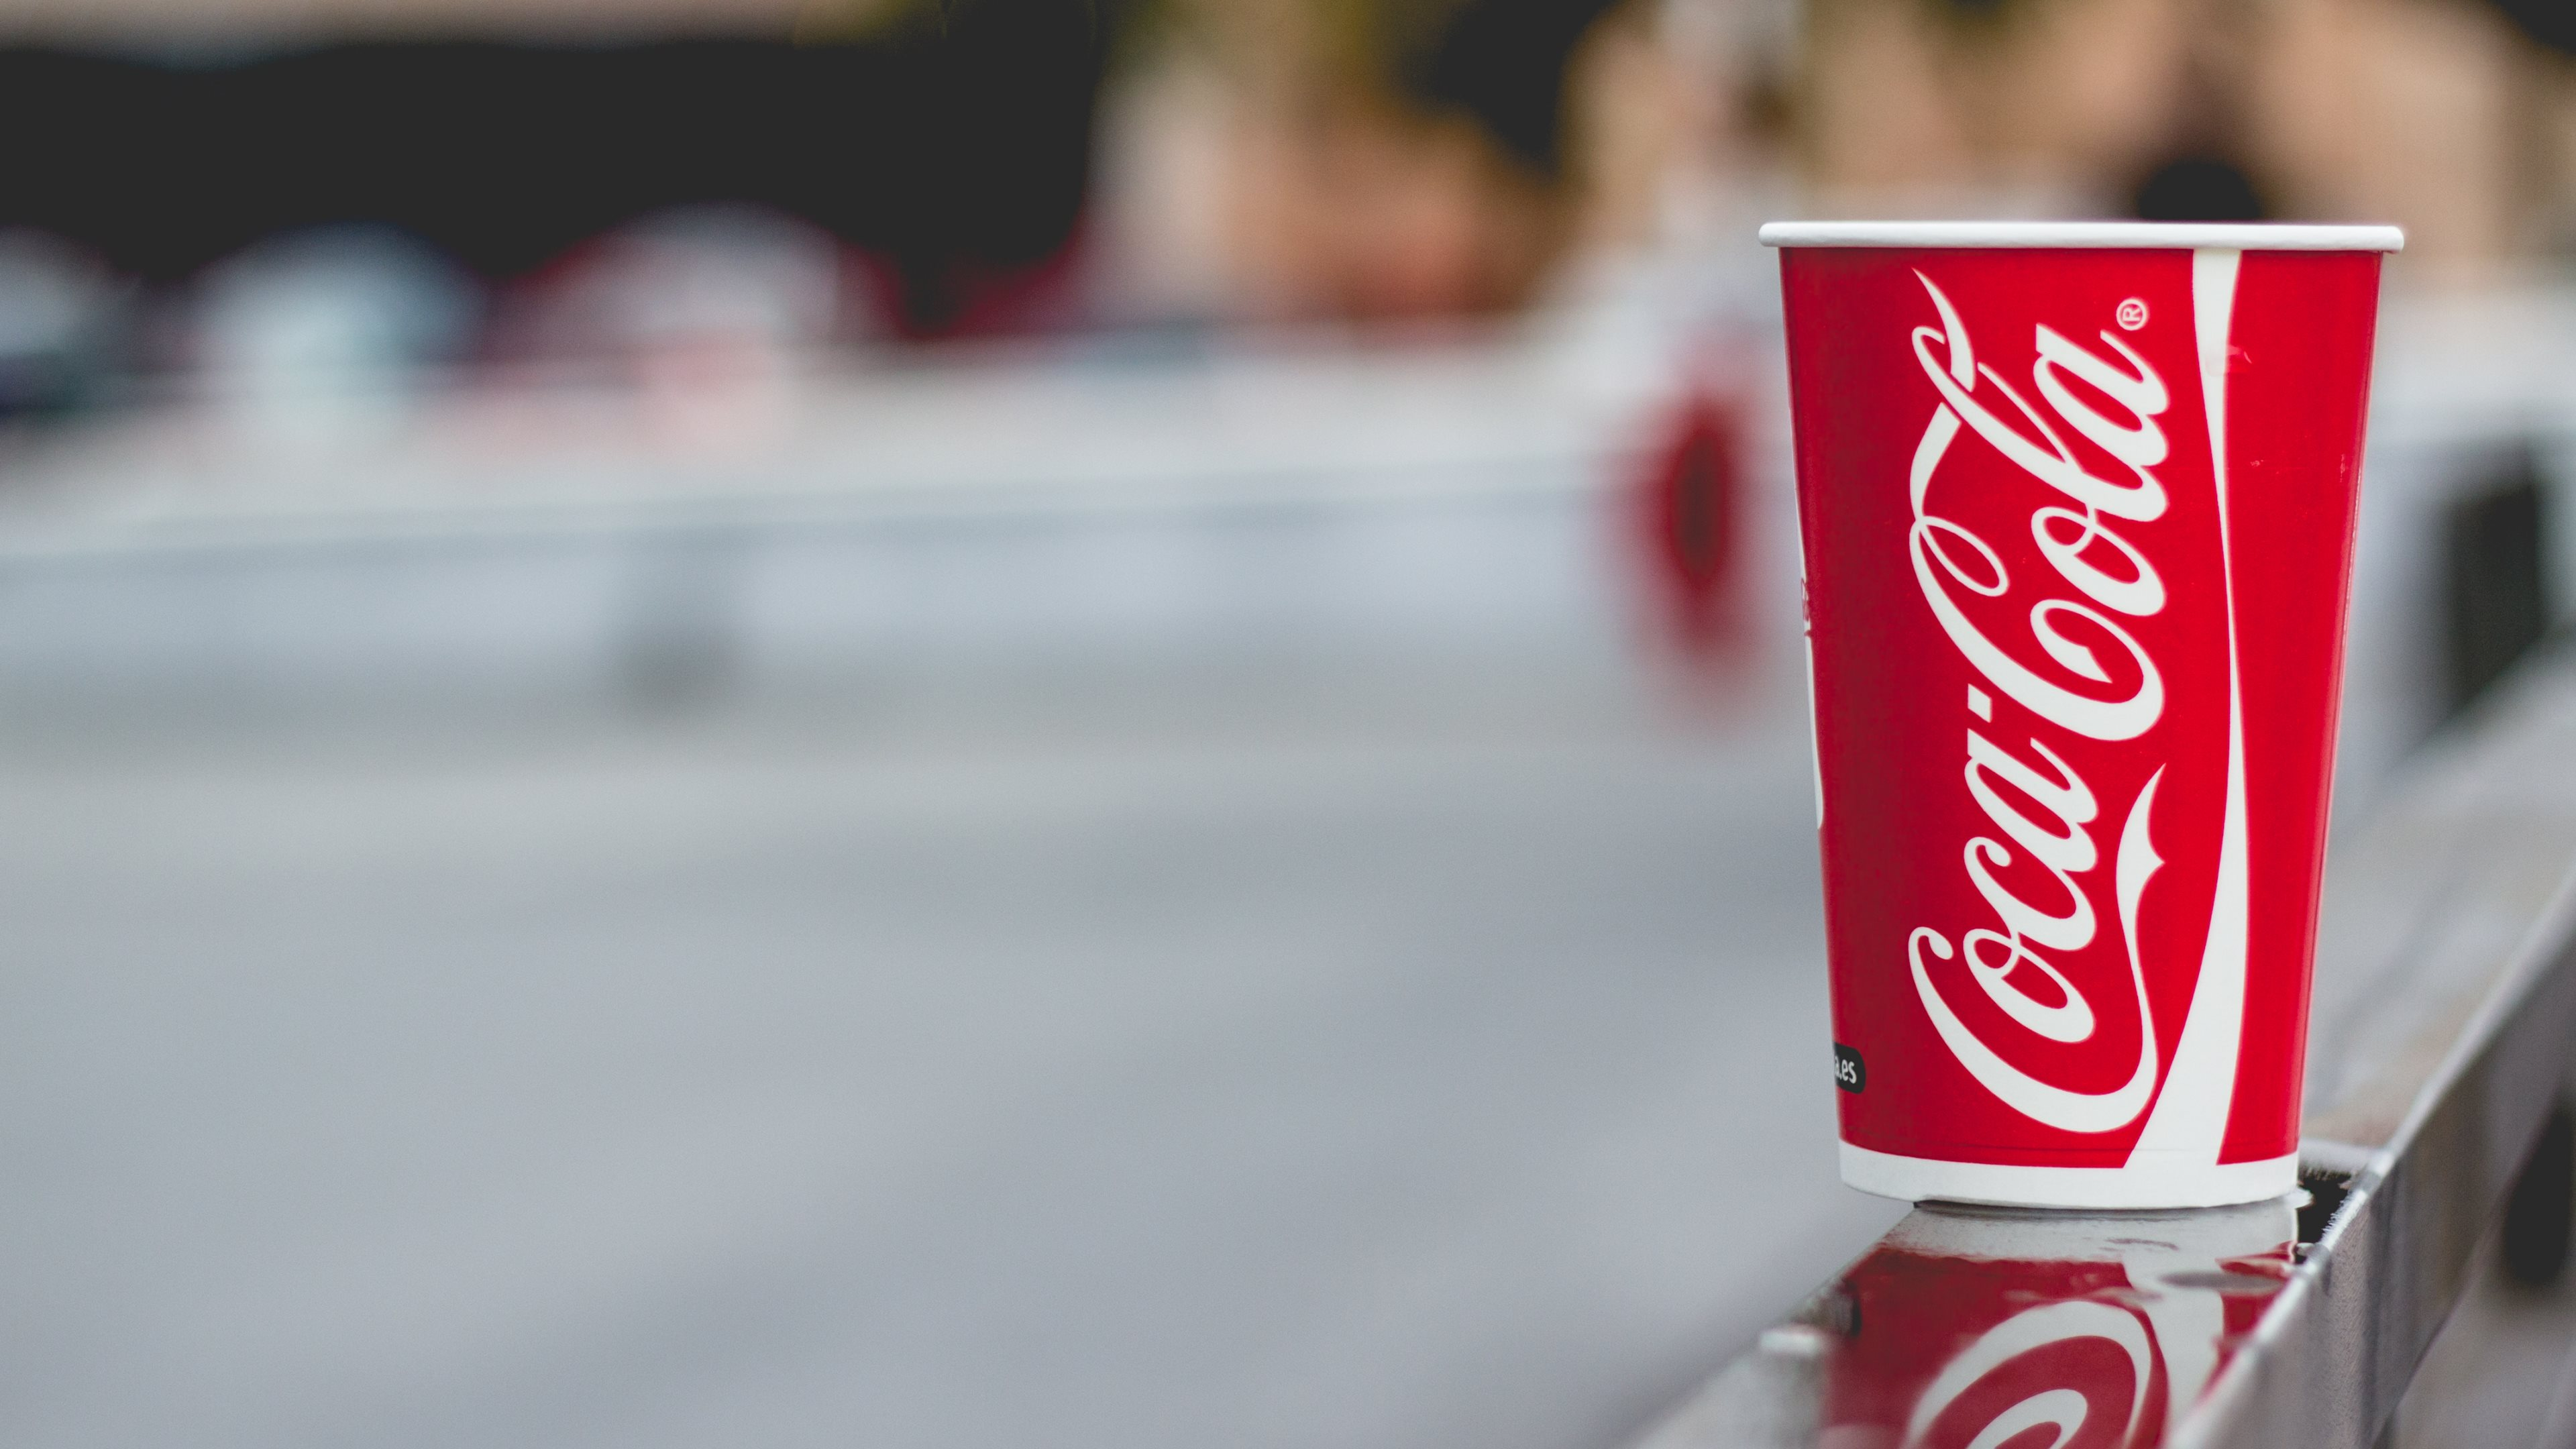 Coca Cola Widescreen HD Wallpaper 61363